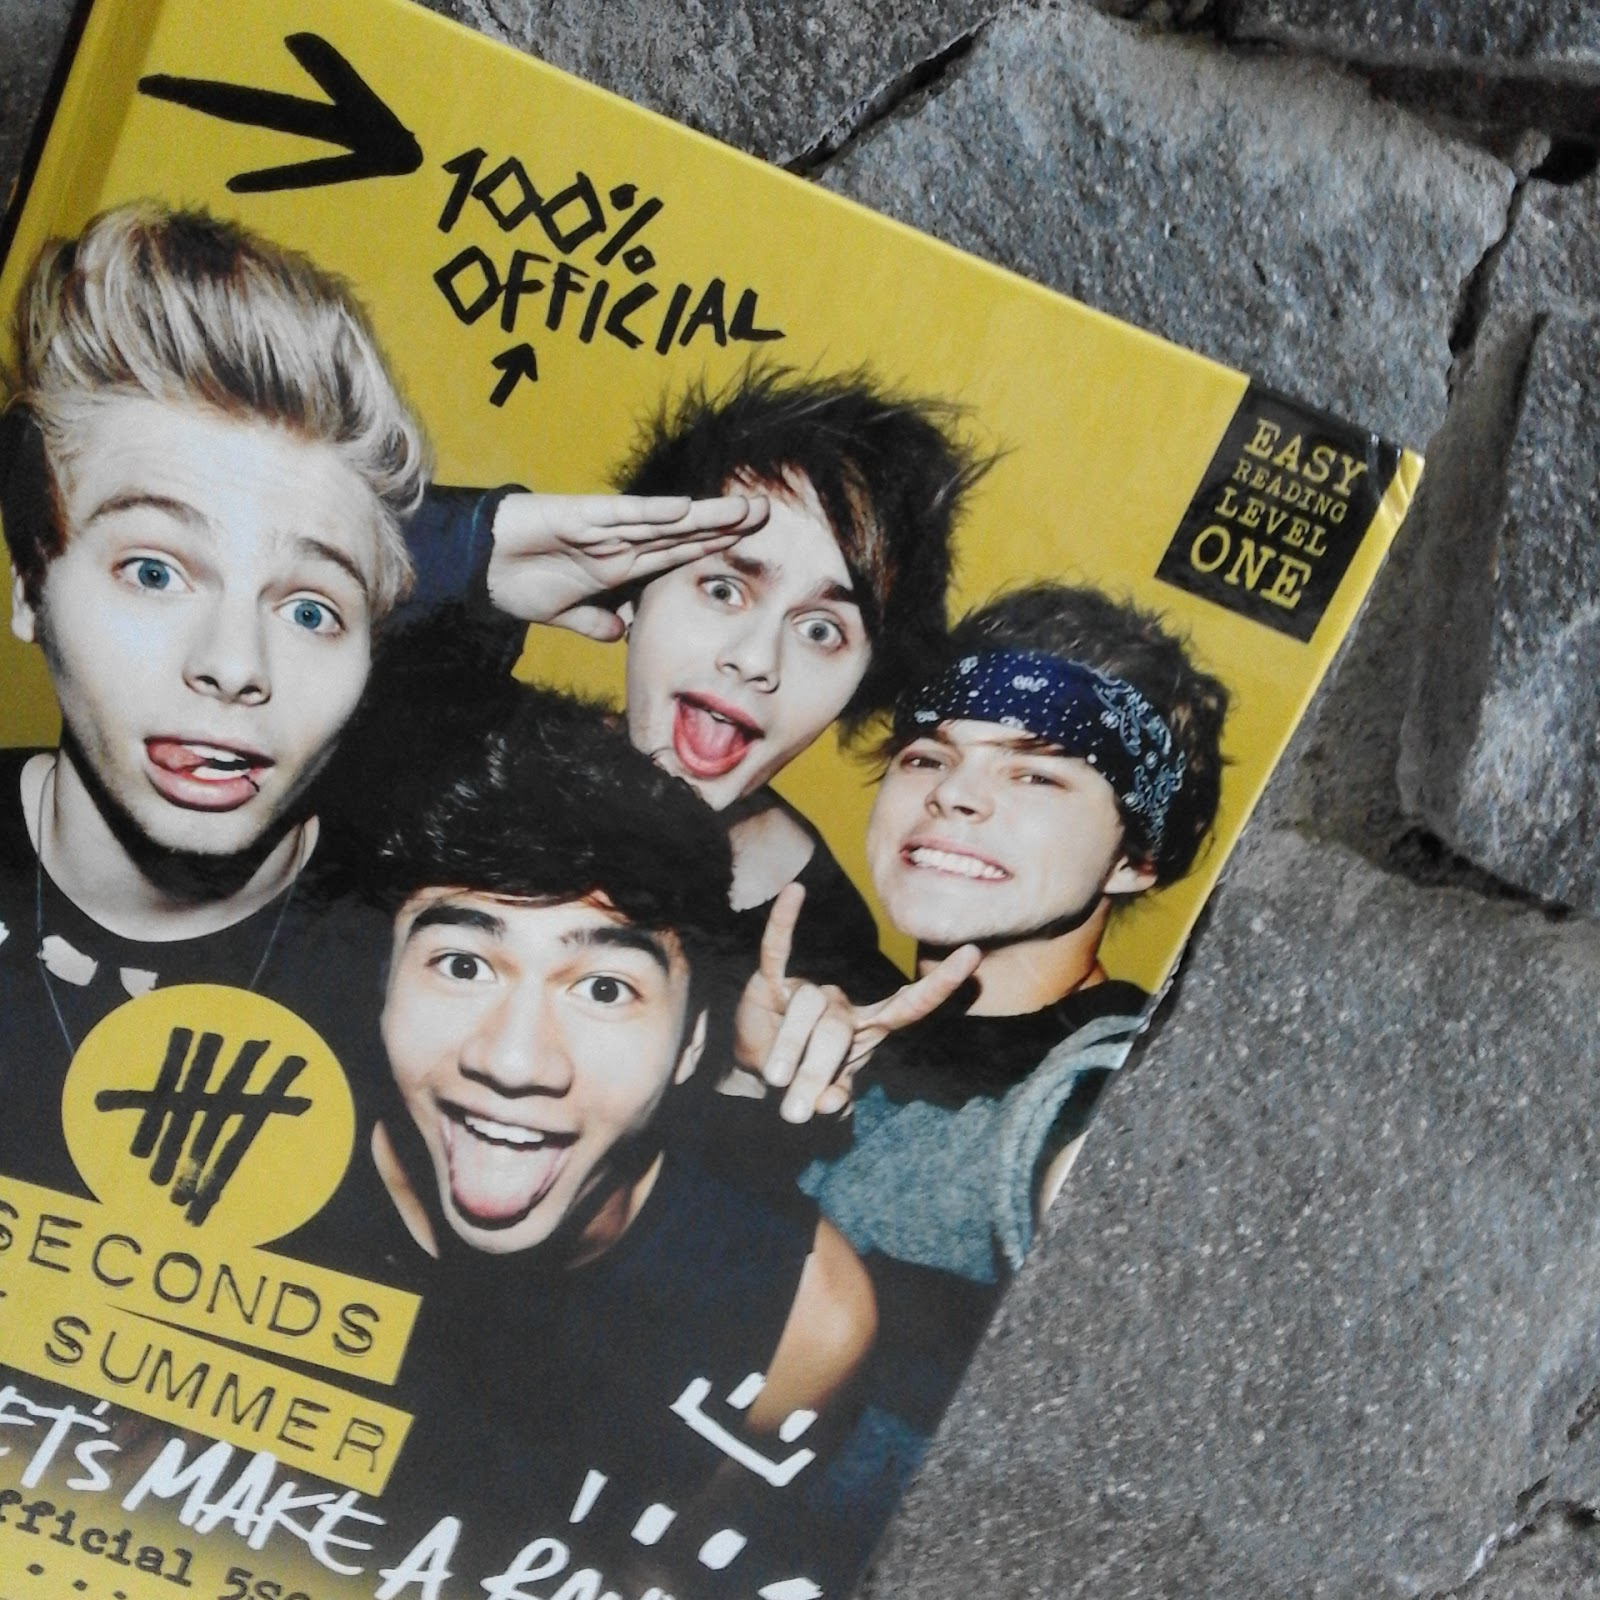 5sos official book hey let s make a band